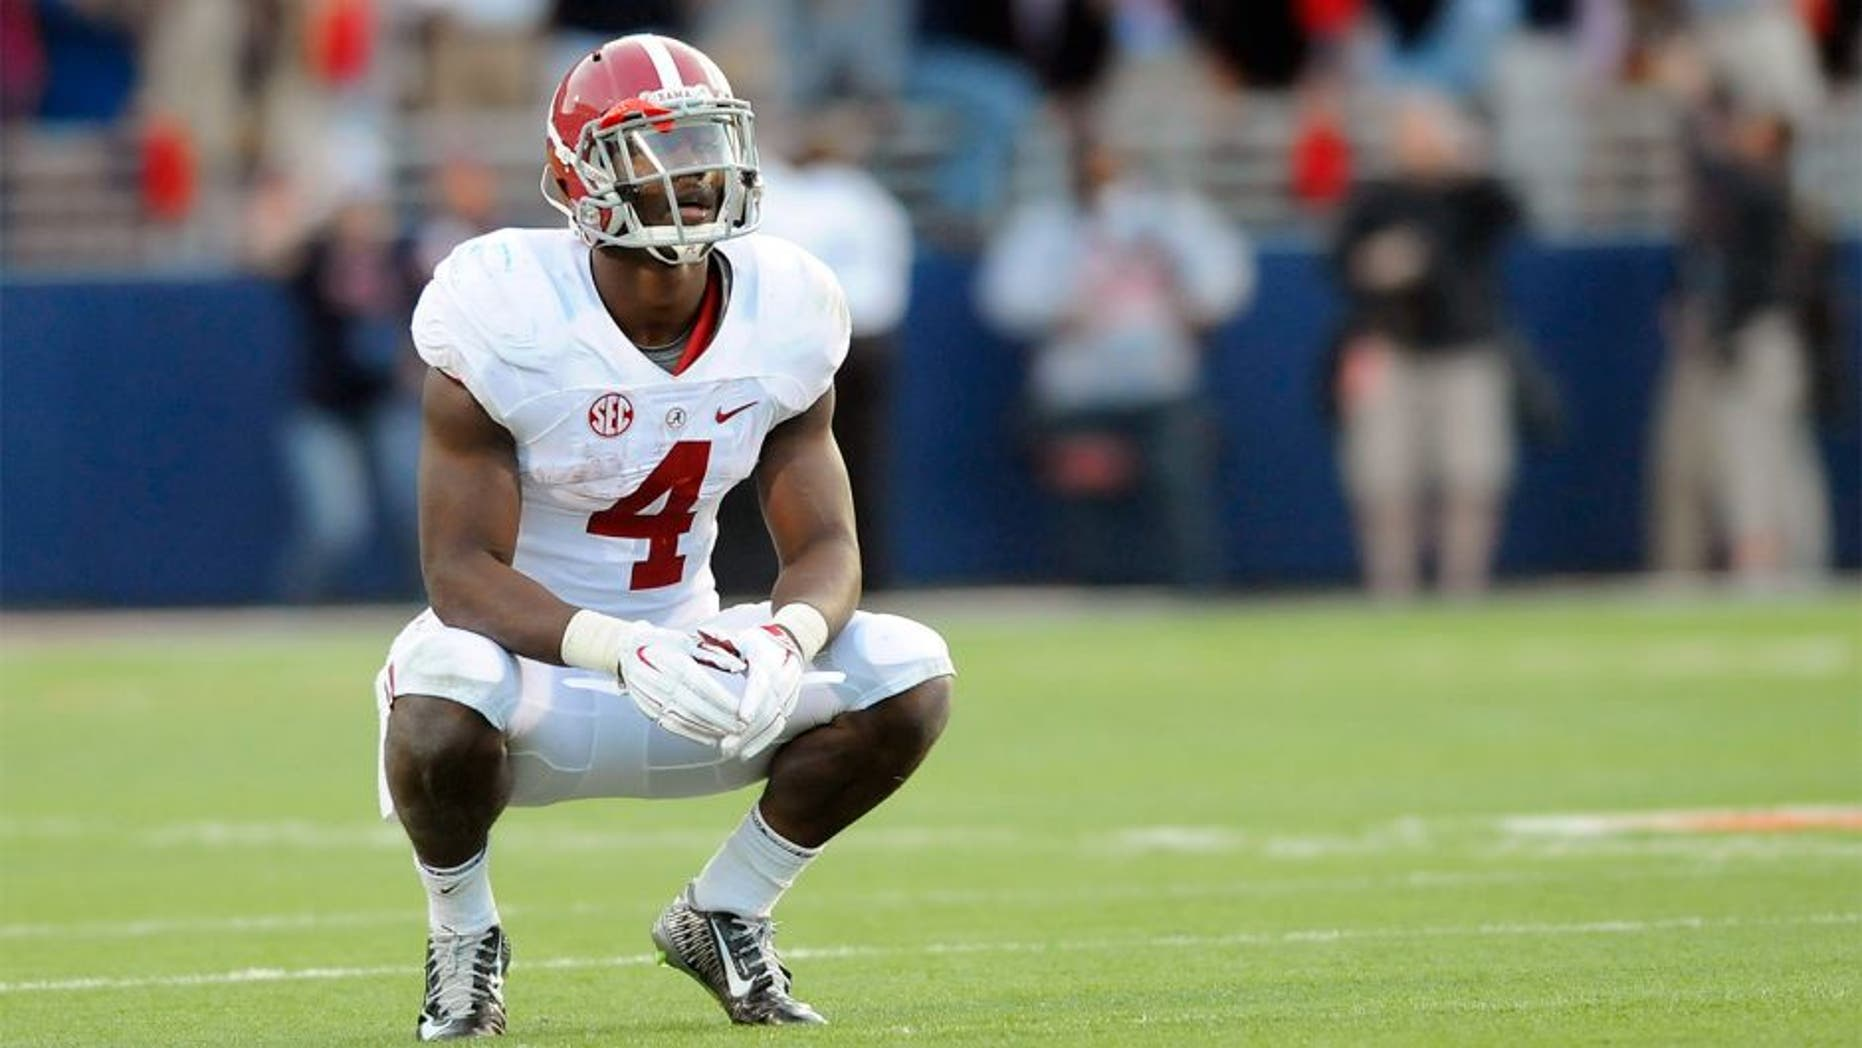 Oct 4, 2014; Oxford, MS, USA; Alabama Crimson Tide running back T.J. Yeldon (4) reacts while watching a replay of an interception in the end zone was overturned during the second half against the Mississippi Rebels at Vaught-Hemingway Stadium. The Rebels won 23-17. Mandatory Credit: Christopher Hanewinckel-USA TODAY Sports